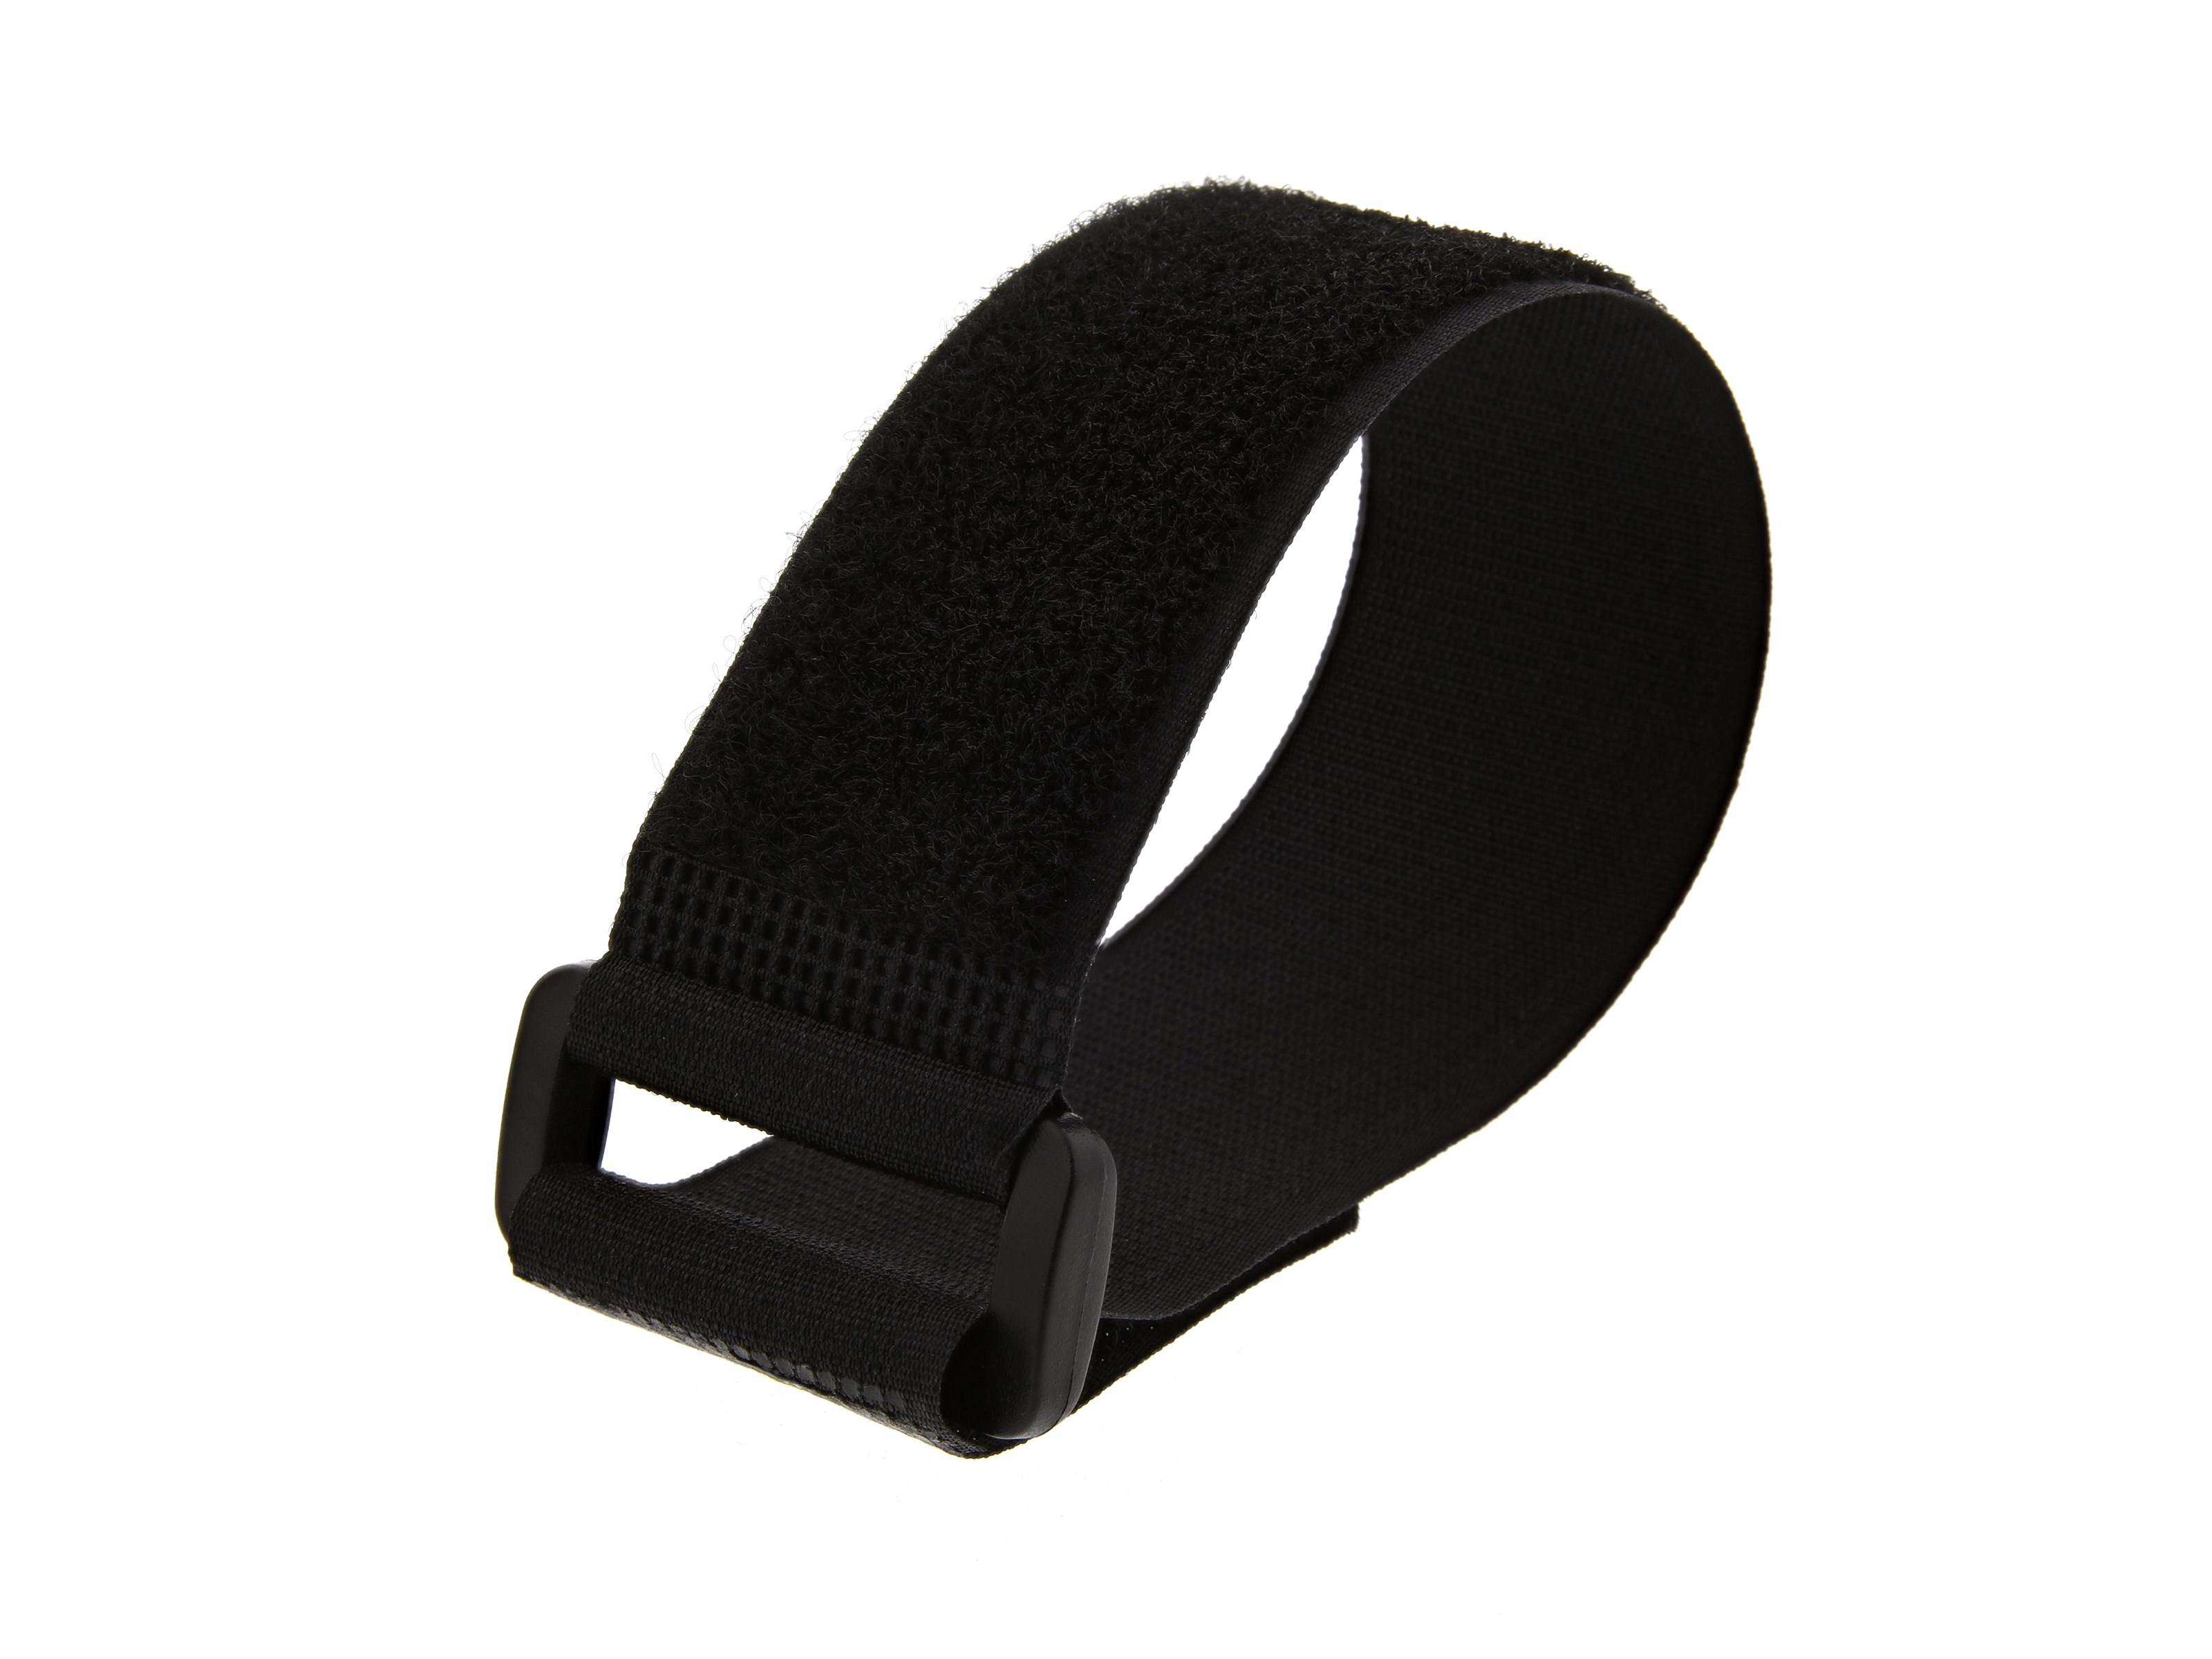 Black 12 x 1.5 inch with Eyelet Heavy Duty Cinch Straps